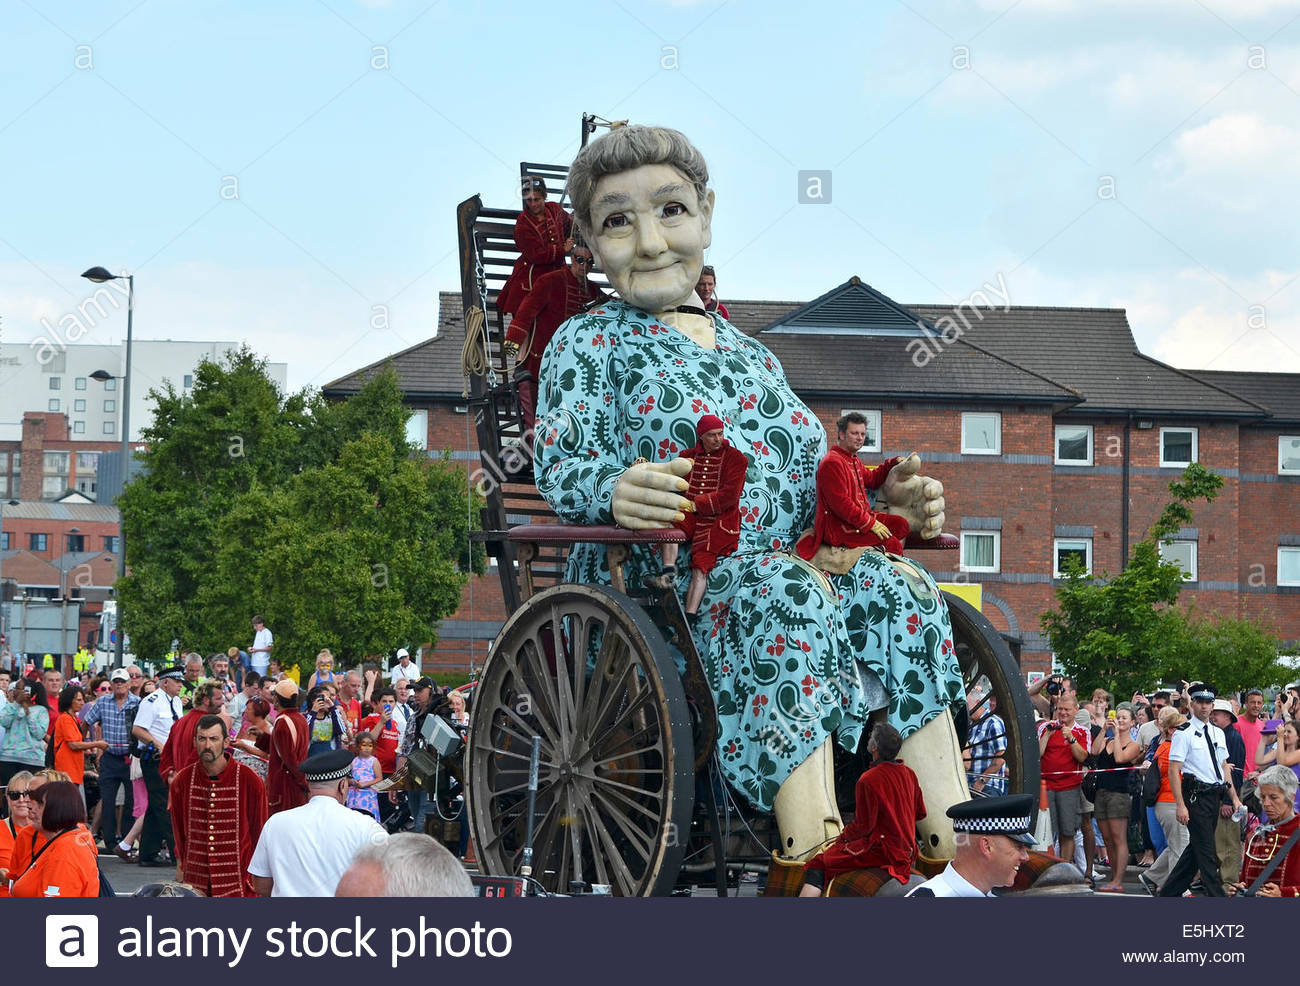 grandma one of the royal de luxe giants in liverpool uk as part stock photo royalty free. Black Bedroom Furniture Sets. Home Design Ideas